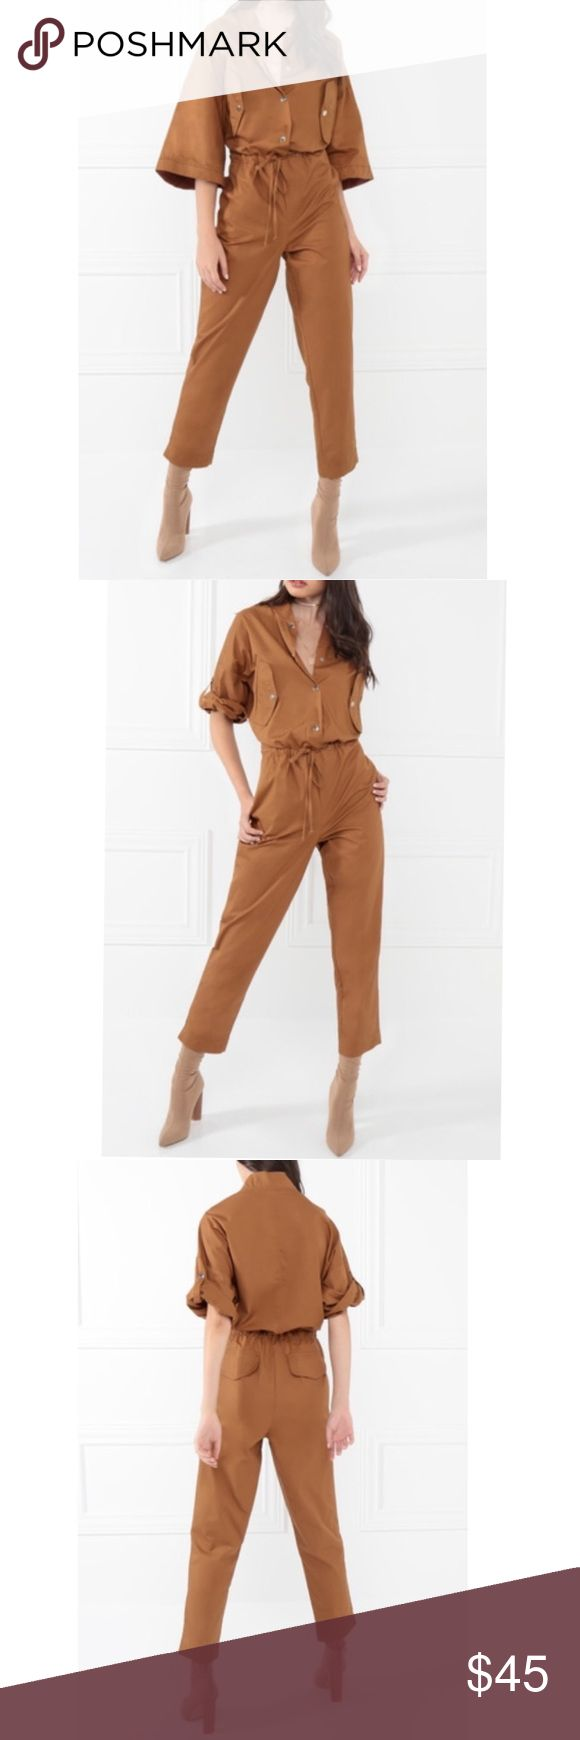 """⭐️New⭐️Just Kickin It"""" Jumpsuit in Camel ***PRICE IS FIRM****New Arrival! This posting is for the new """"Just Kickin It"""" Jumpsuit in Camel! Sizes small, med, and large available. Camel is trending this Fall season and this jumpsuit would look great with a pair of heels! Model Is 5'9 And Is Wearing A Small.                           100% Cotton, Front Pocket construction, and synched tie waist.   Measurements For A Small: Bust: Approx. 44"""" Sleeve Length: Approx. 17 ½"""" Waist: Approx. 38"""" Length…"""